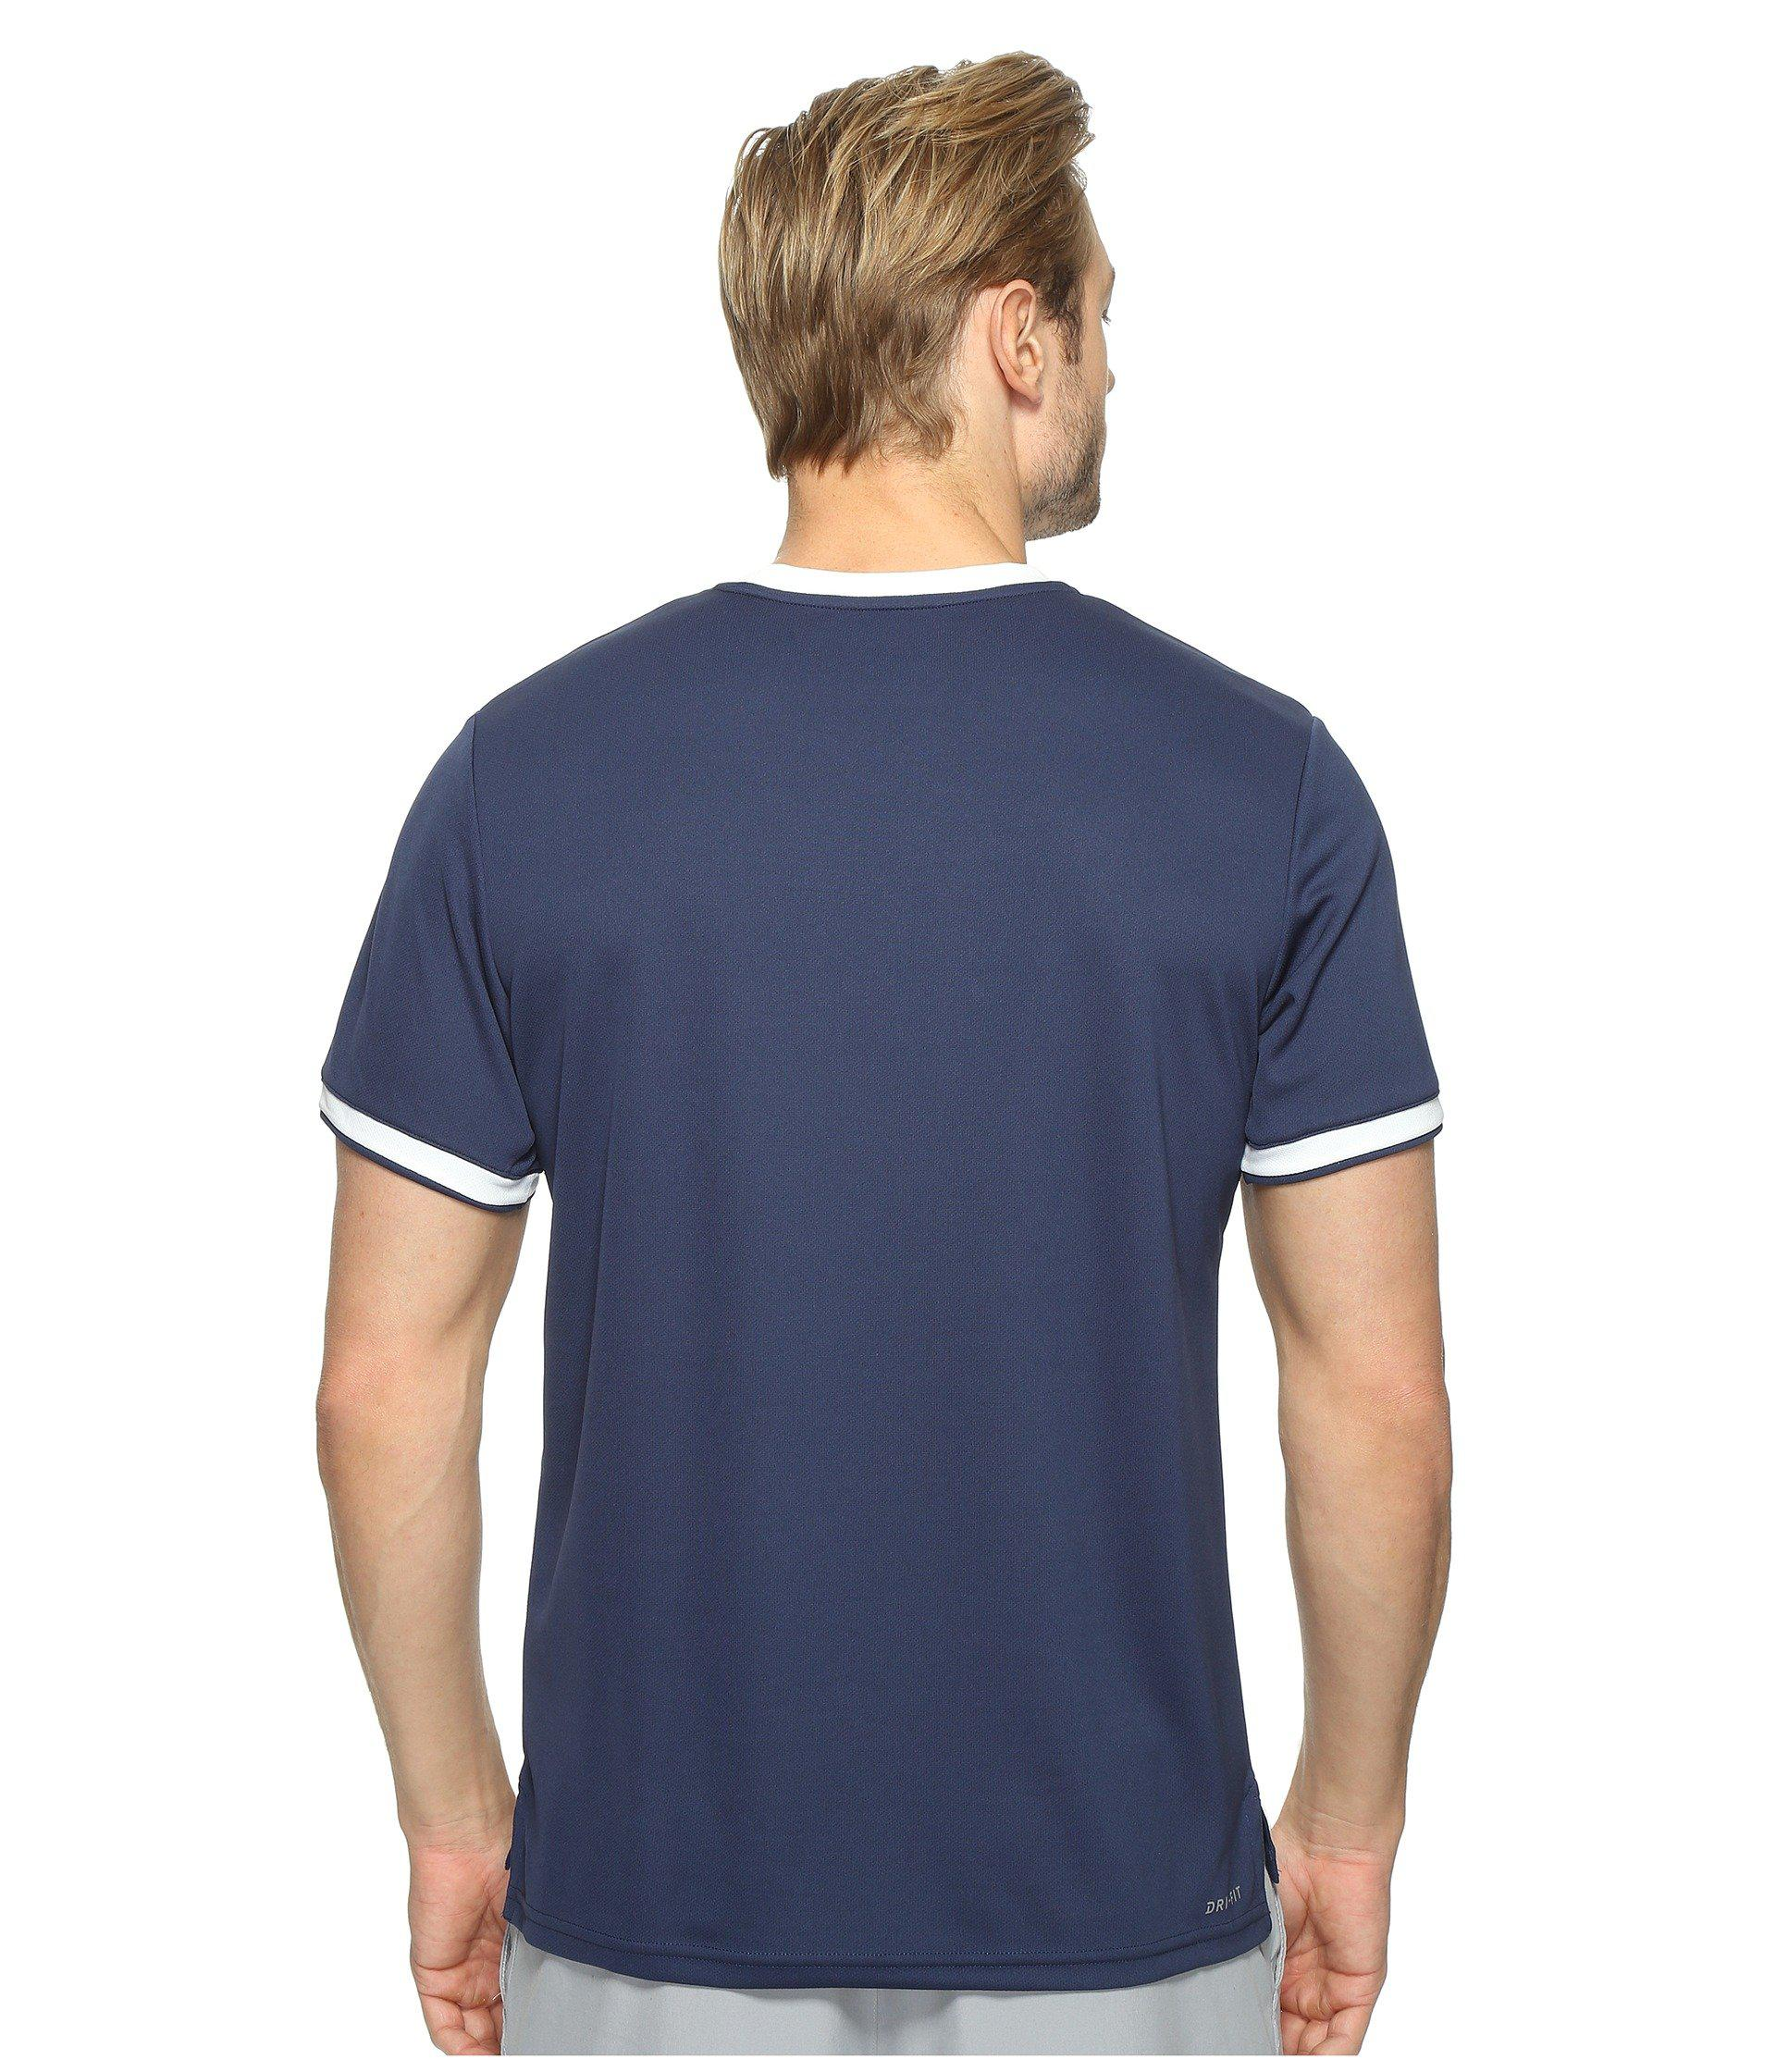 reputable site 88831 57aa1 Nike Court Dry Team Crew in Blue for Men - Lyst